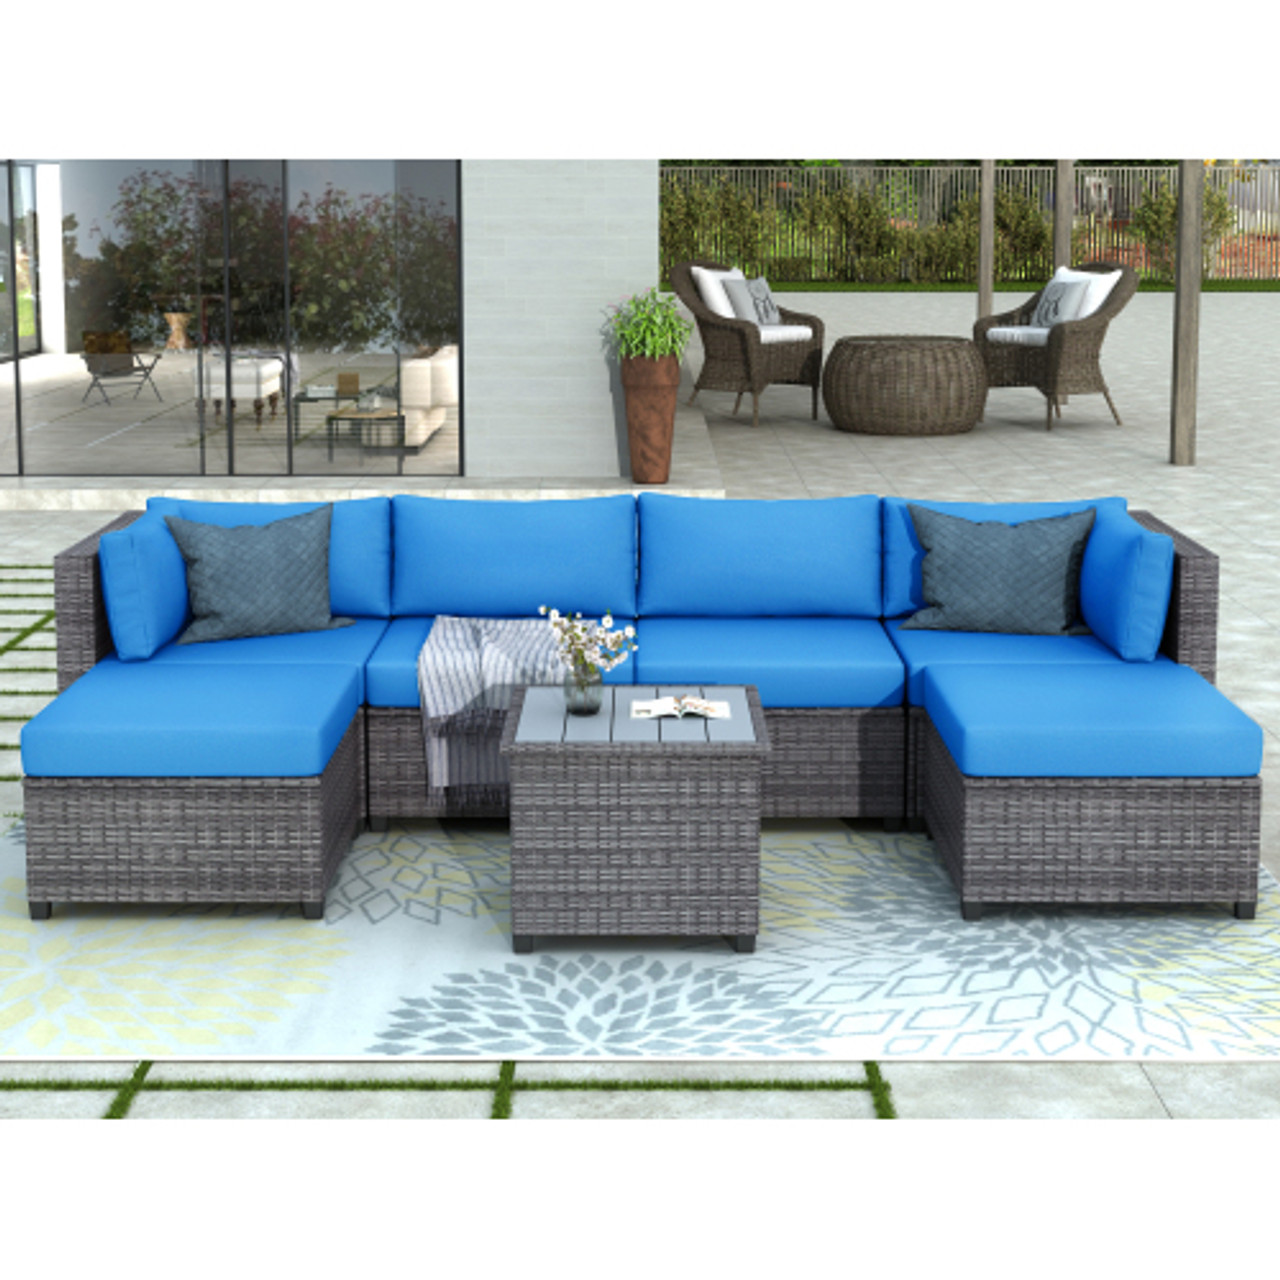 u style 7 piece rattan sectional seating group with cushions outdoor ratten sofa new